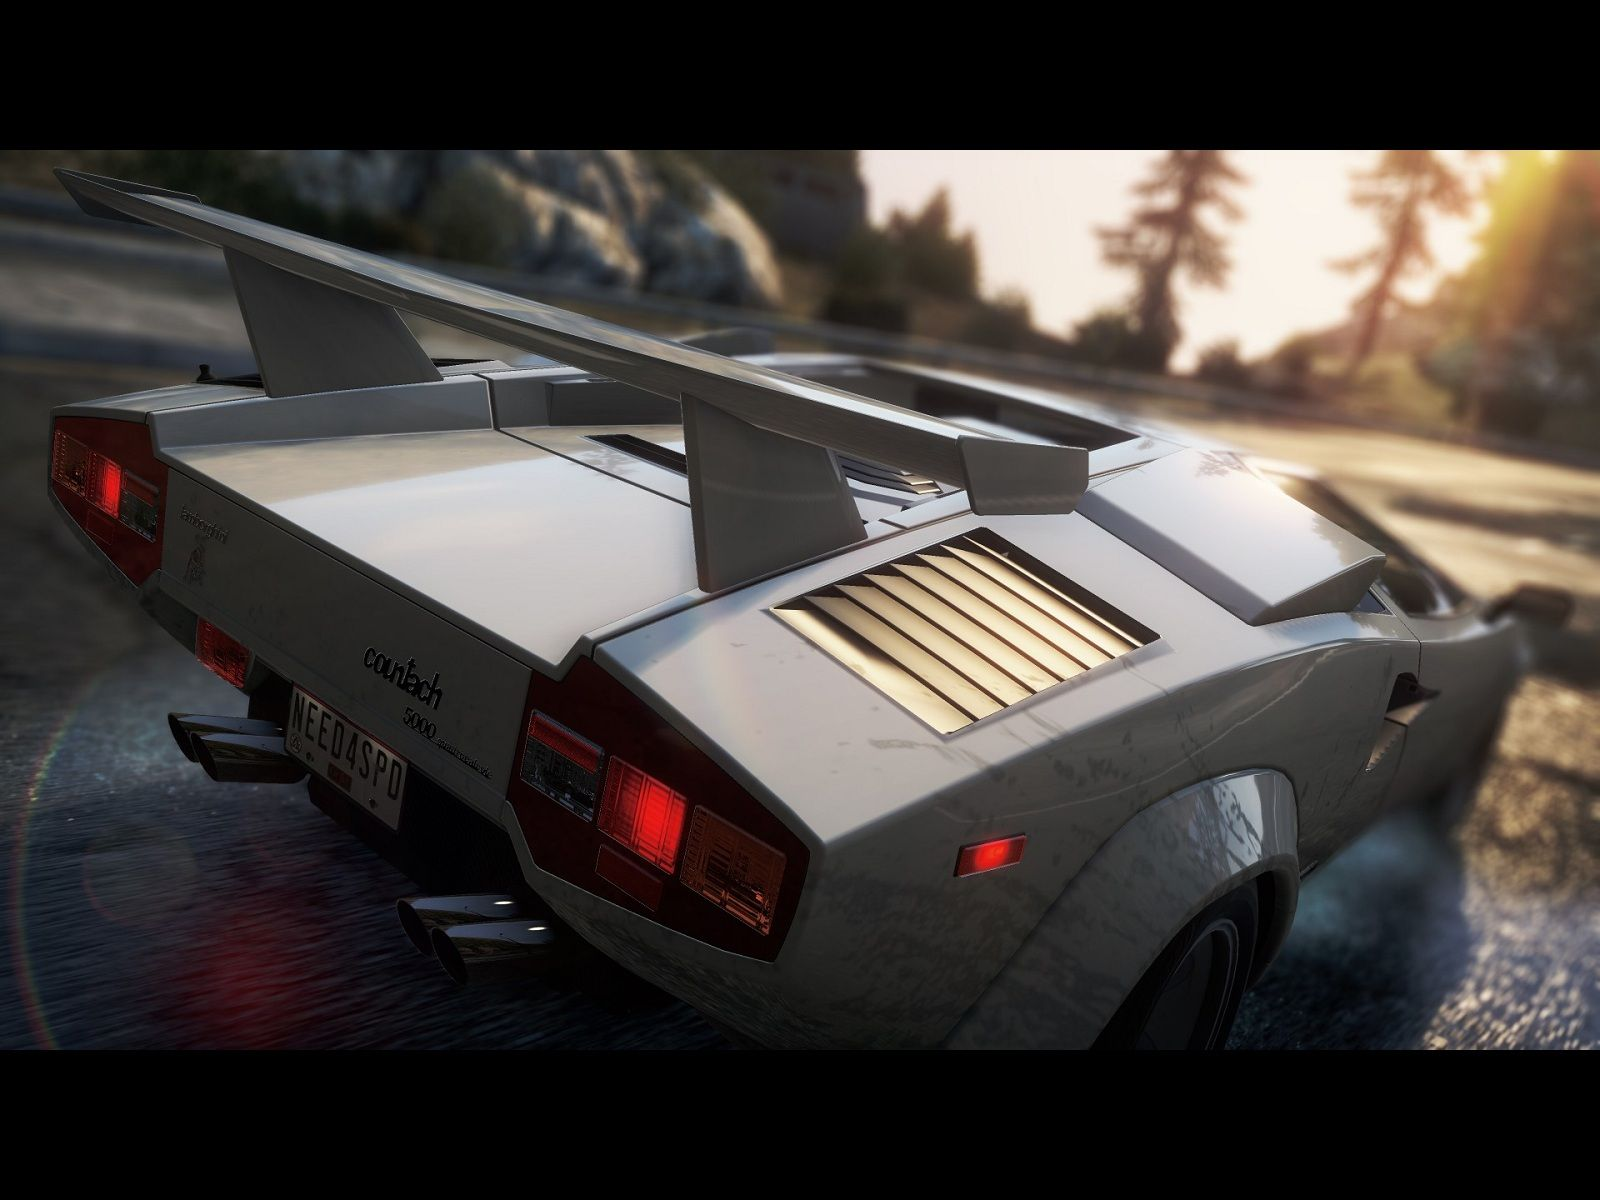 lamborghini countach lamborghini countach qv5000 need for speed most wanted 2012 lambo. Black Bedroom Furniture Sets. Home Design Ideas